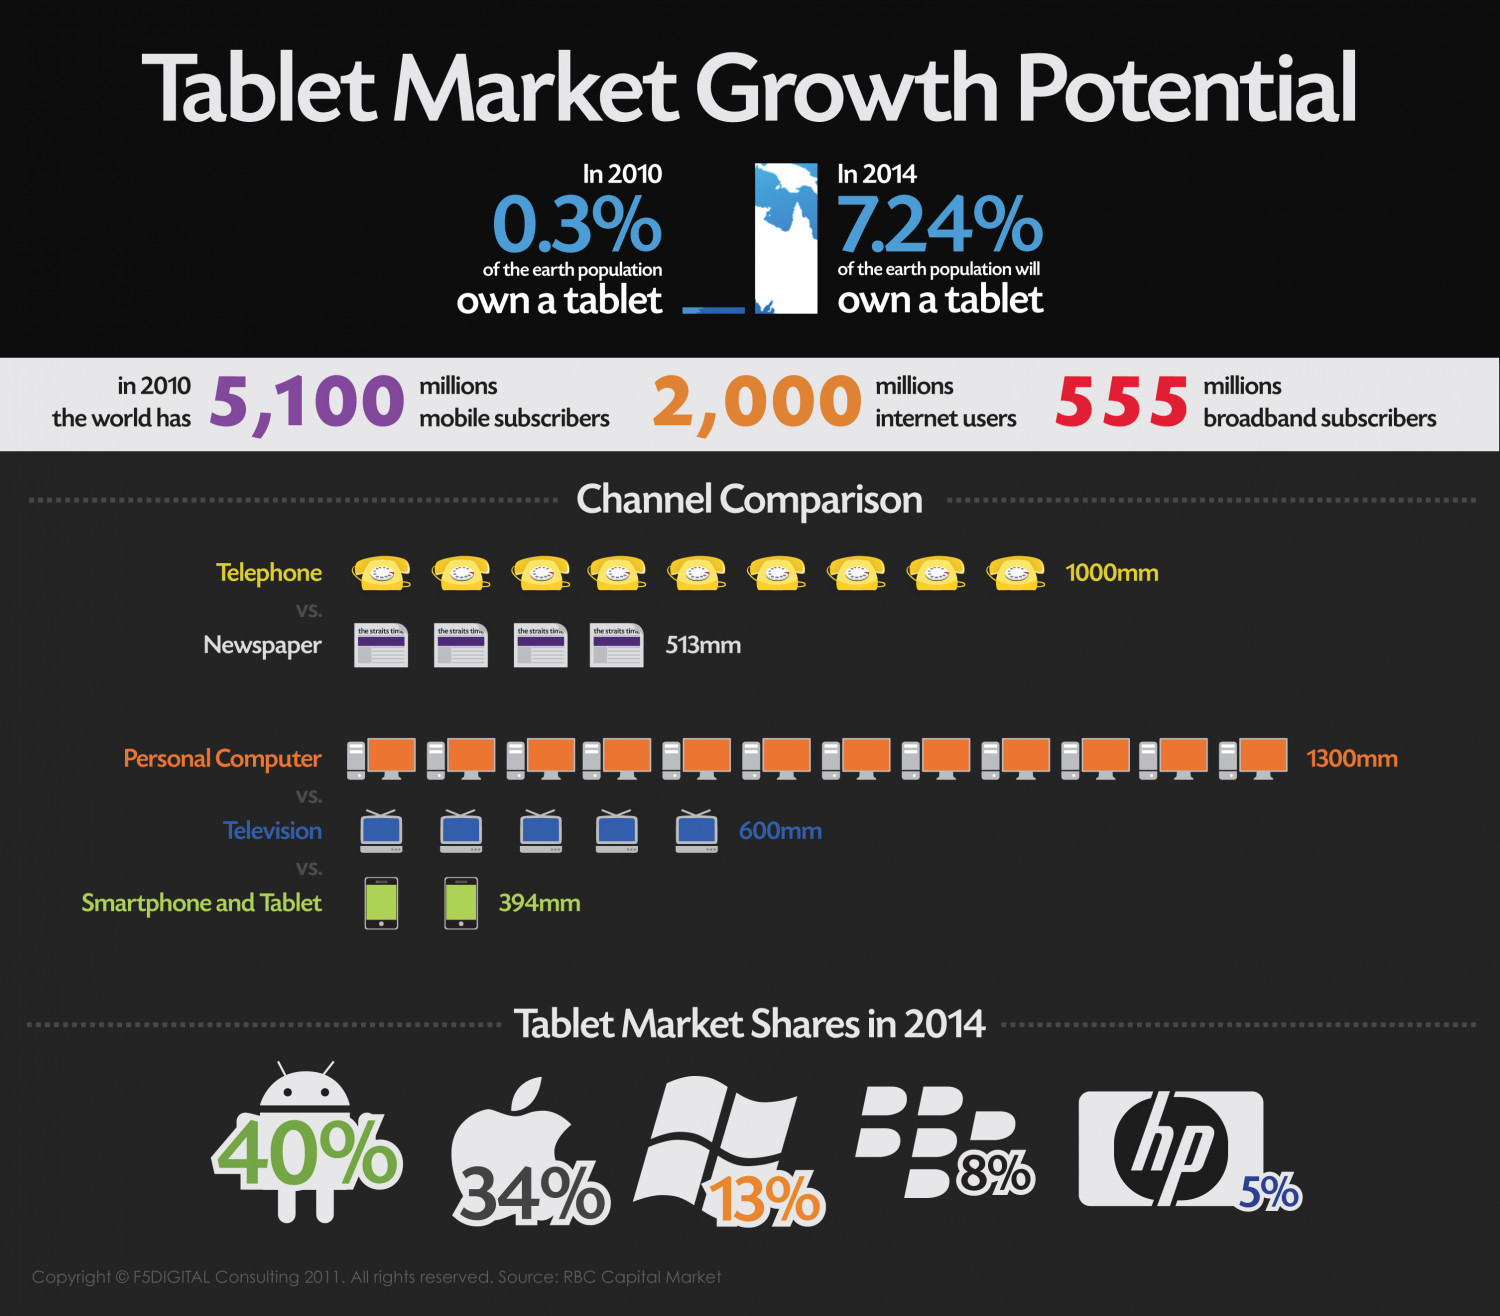 Tablet Growth Potential Infographic